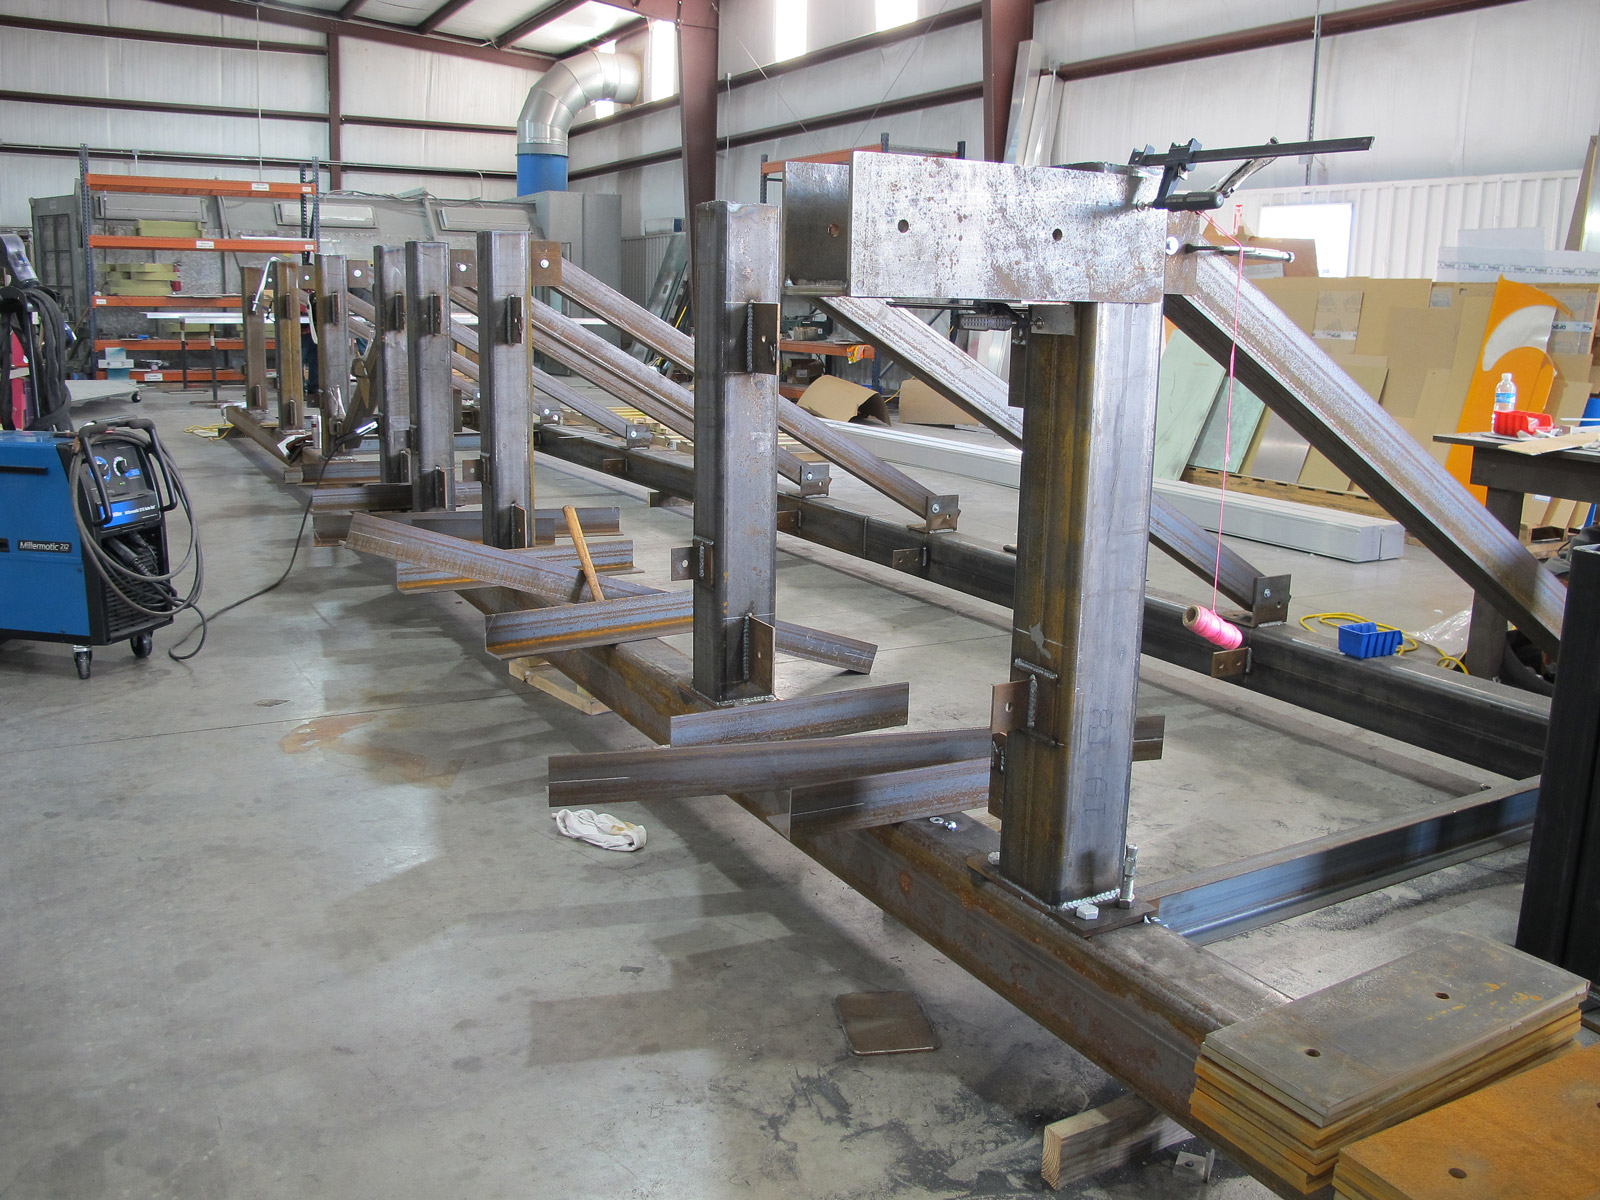 Steel roof support structure for custom channel letters for office tower in fabrication shop.